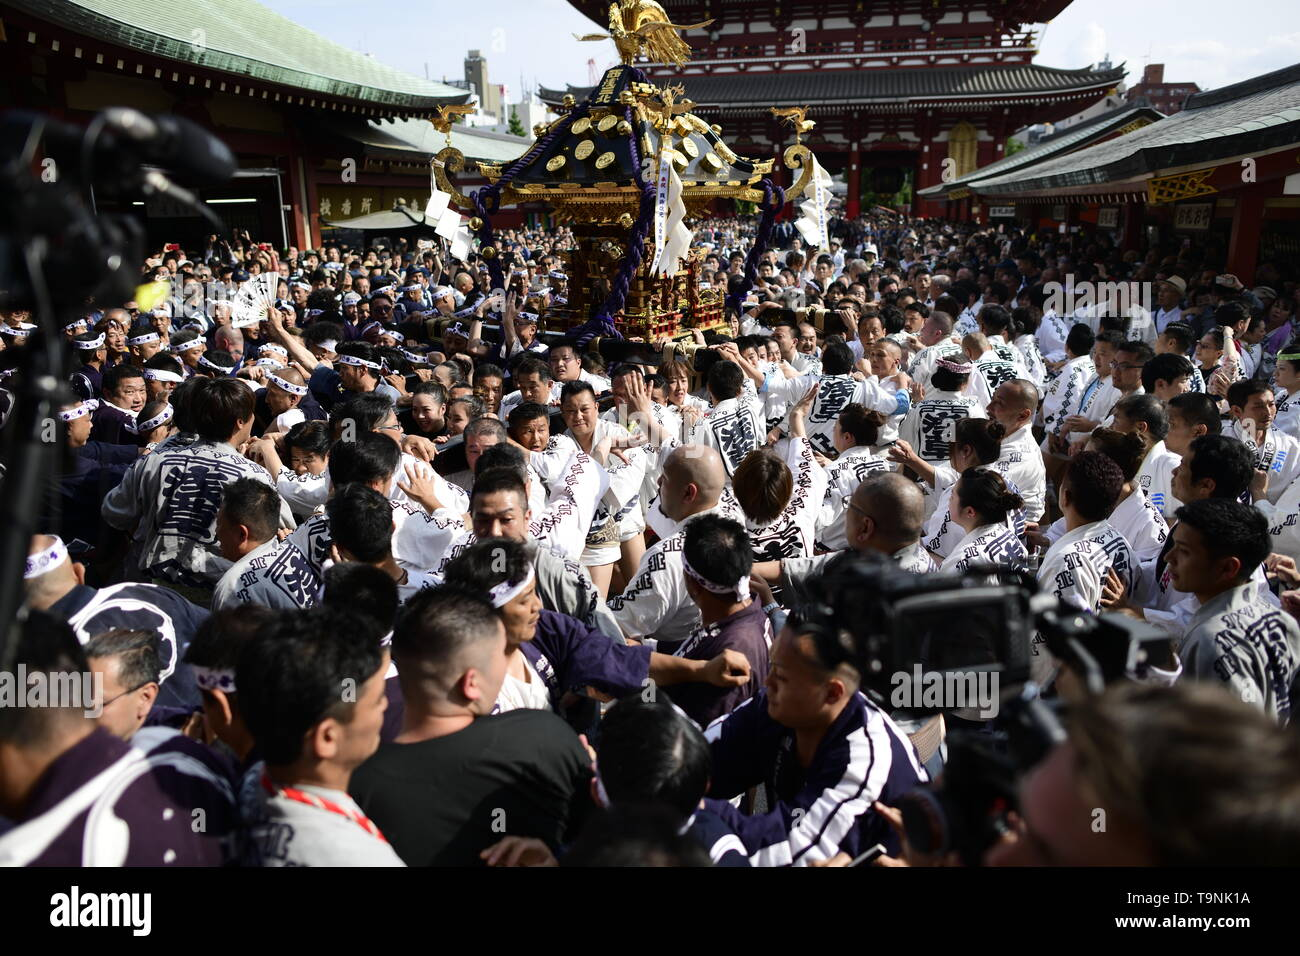 "TOKYO, JAPAN - MAY 18: Participants clad in traditional happi coats carry a portable shrine in front of Sensoji Temple during Tokyo's one of the largest three day festival called ""Sanja Matsuri"" on May 18, 2019 in Tokyo, Japan. A boisterous traditional mikoshi (portable shrine) is carried in the streets of Asakusa to bring goodluck, blessings and prosperity to the area and its inhabitants. (Photo: Richard Atrero de Guzman/ AFLO) Stock Photo"